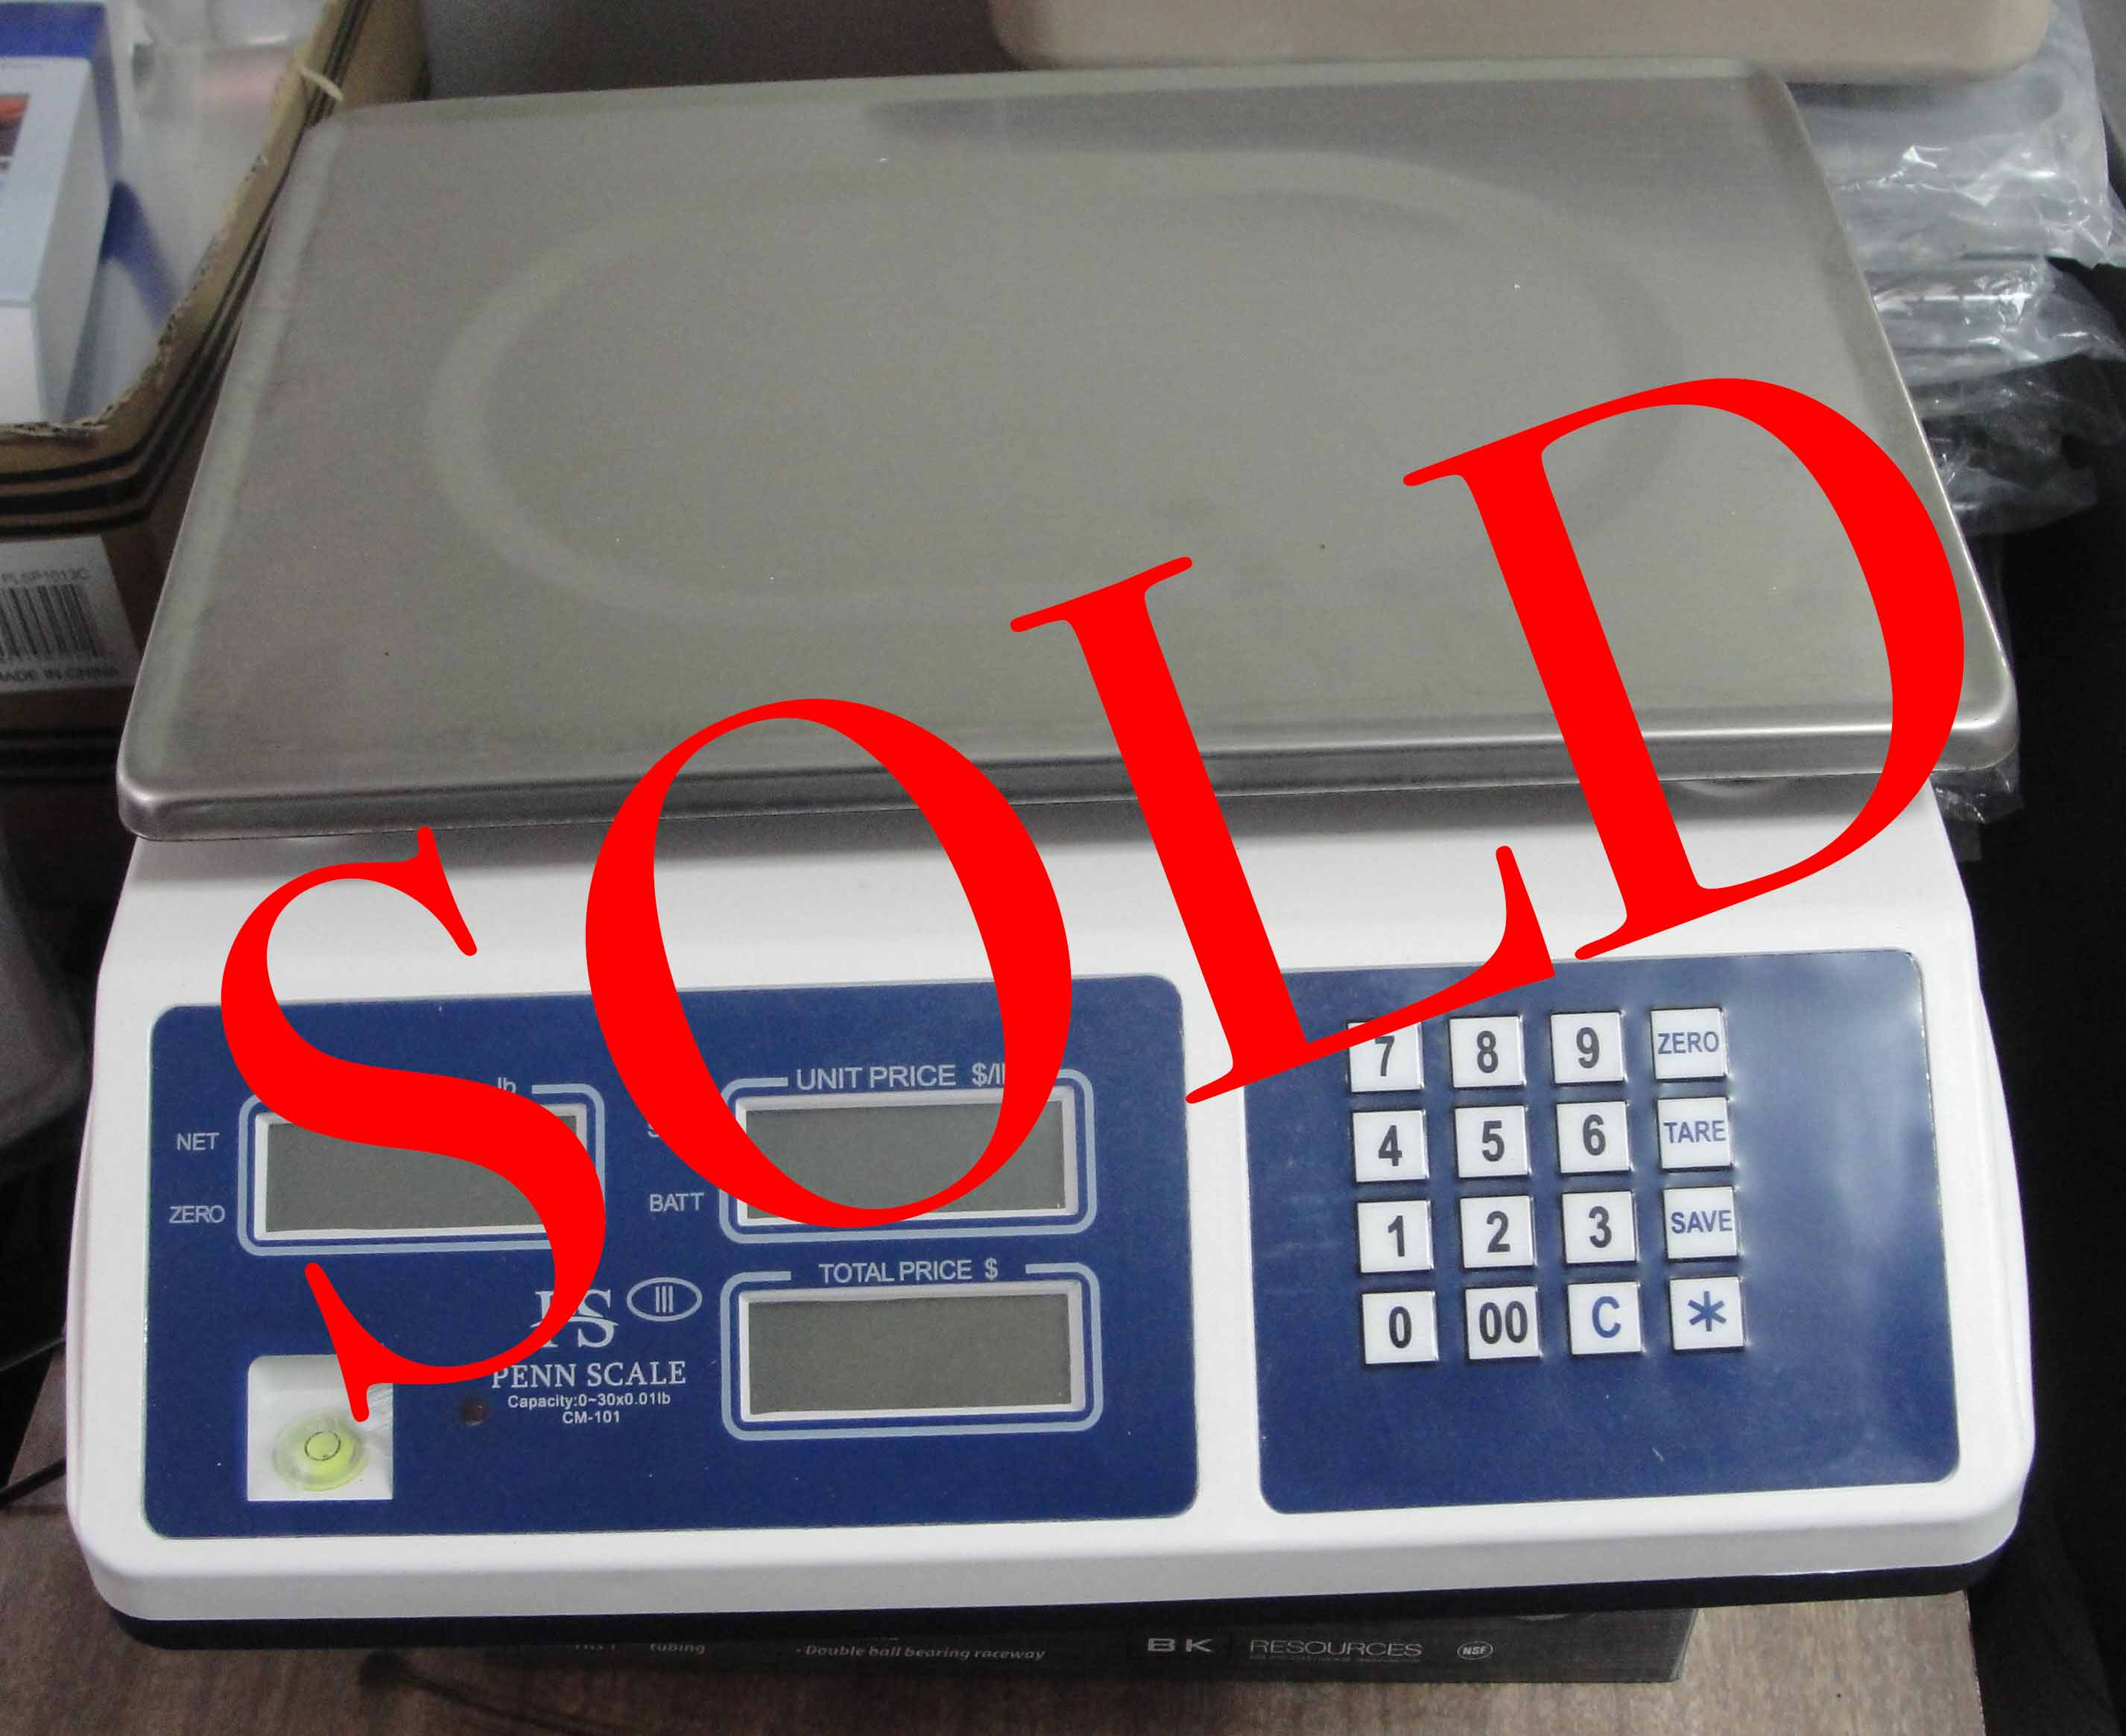 New Penn Scale CM- 101 30lb price computing scale